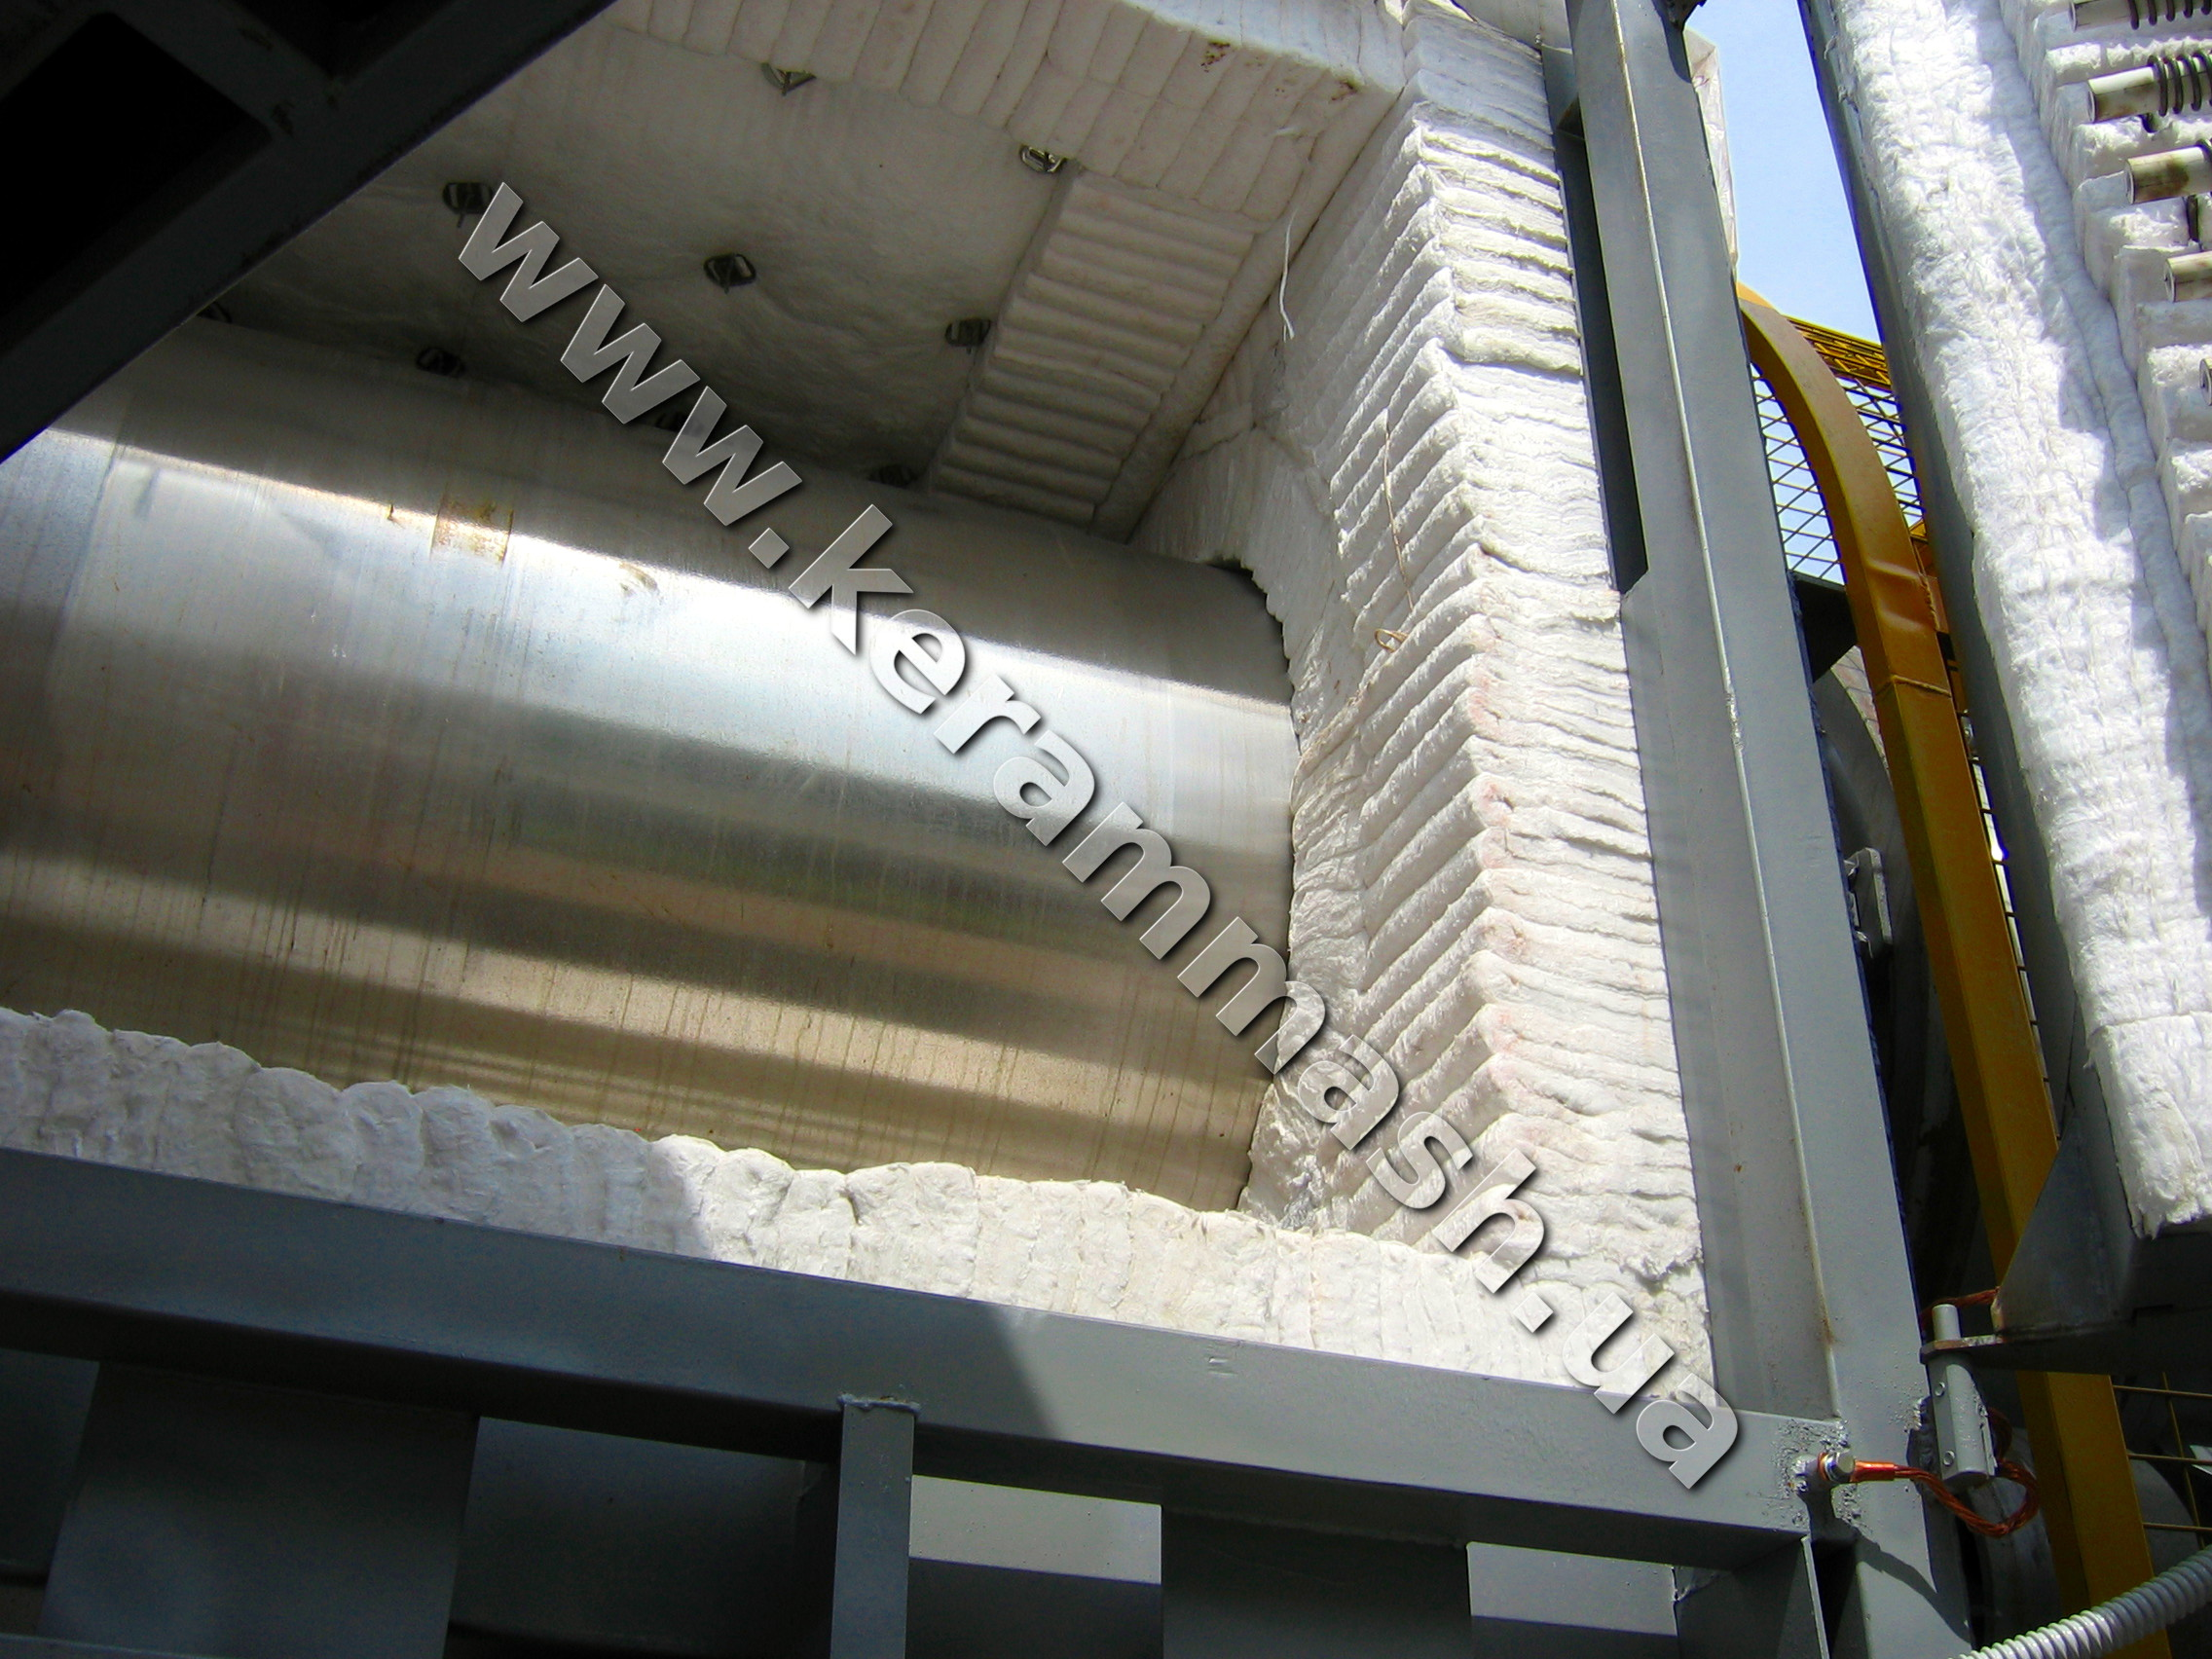 Industrial Electric drum-type furnace for drying and calcination